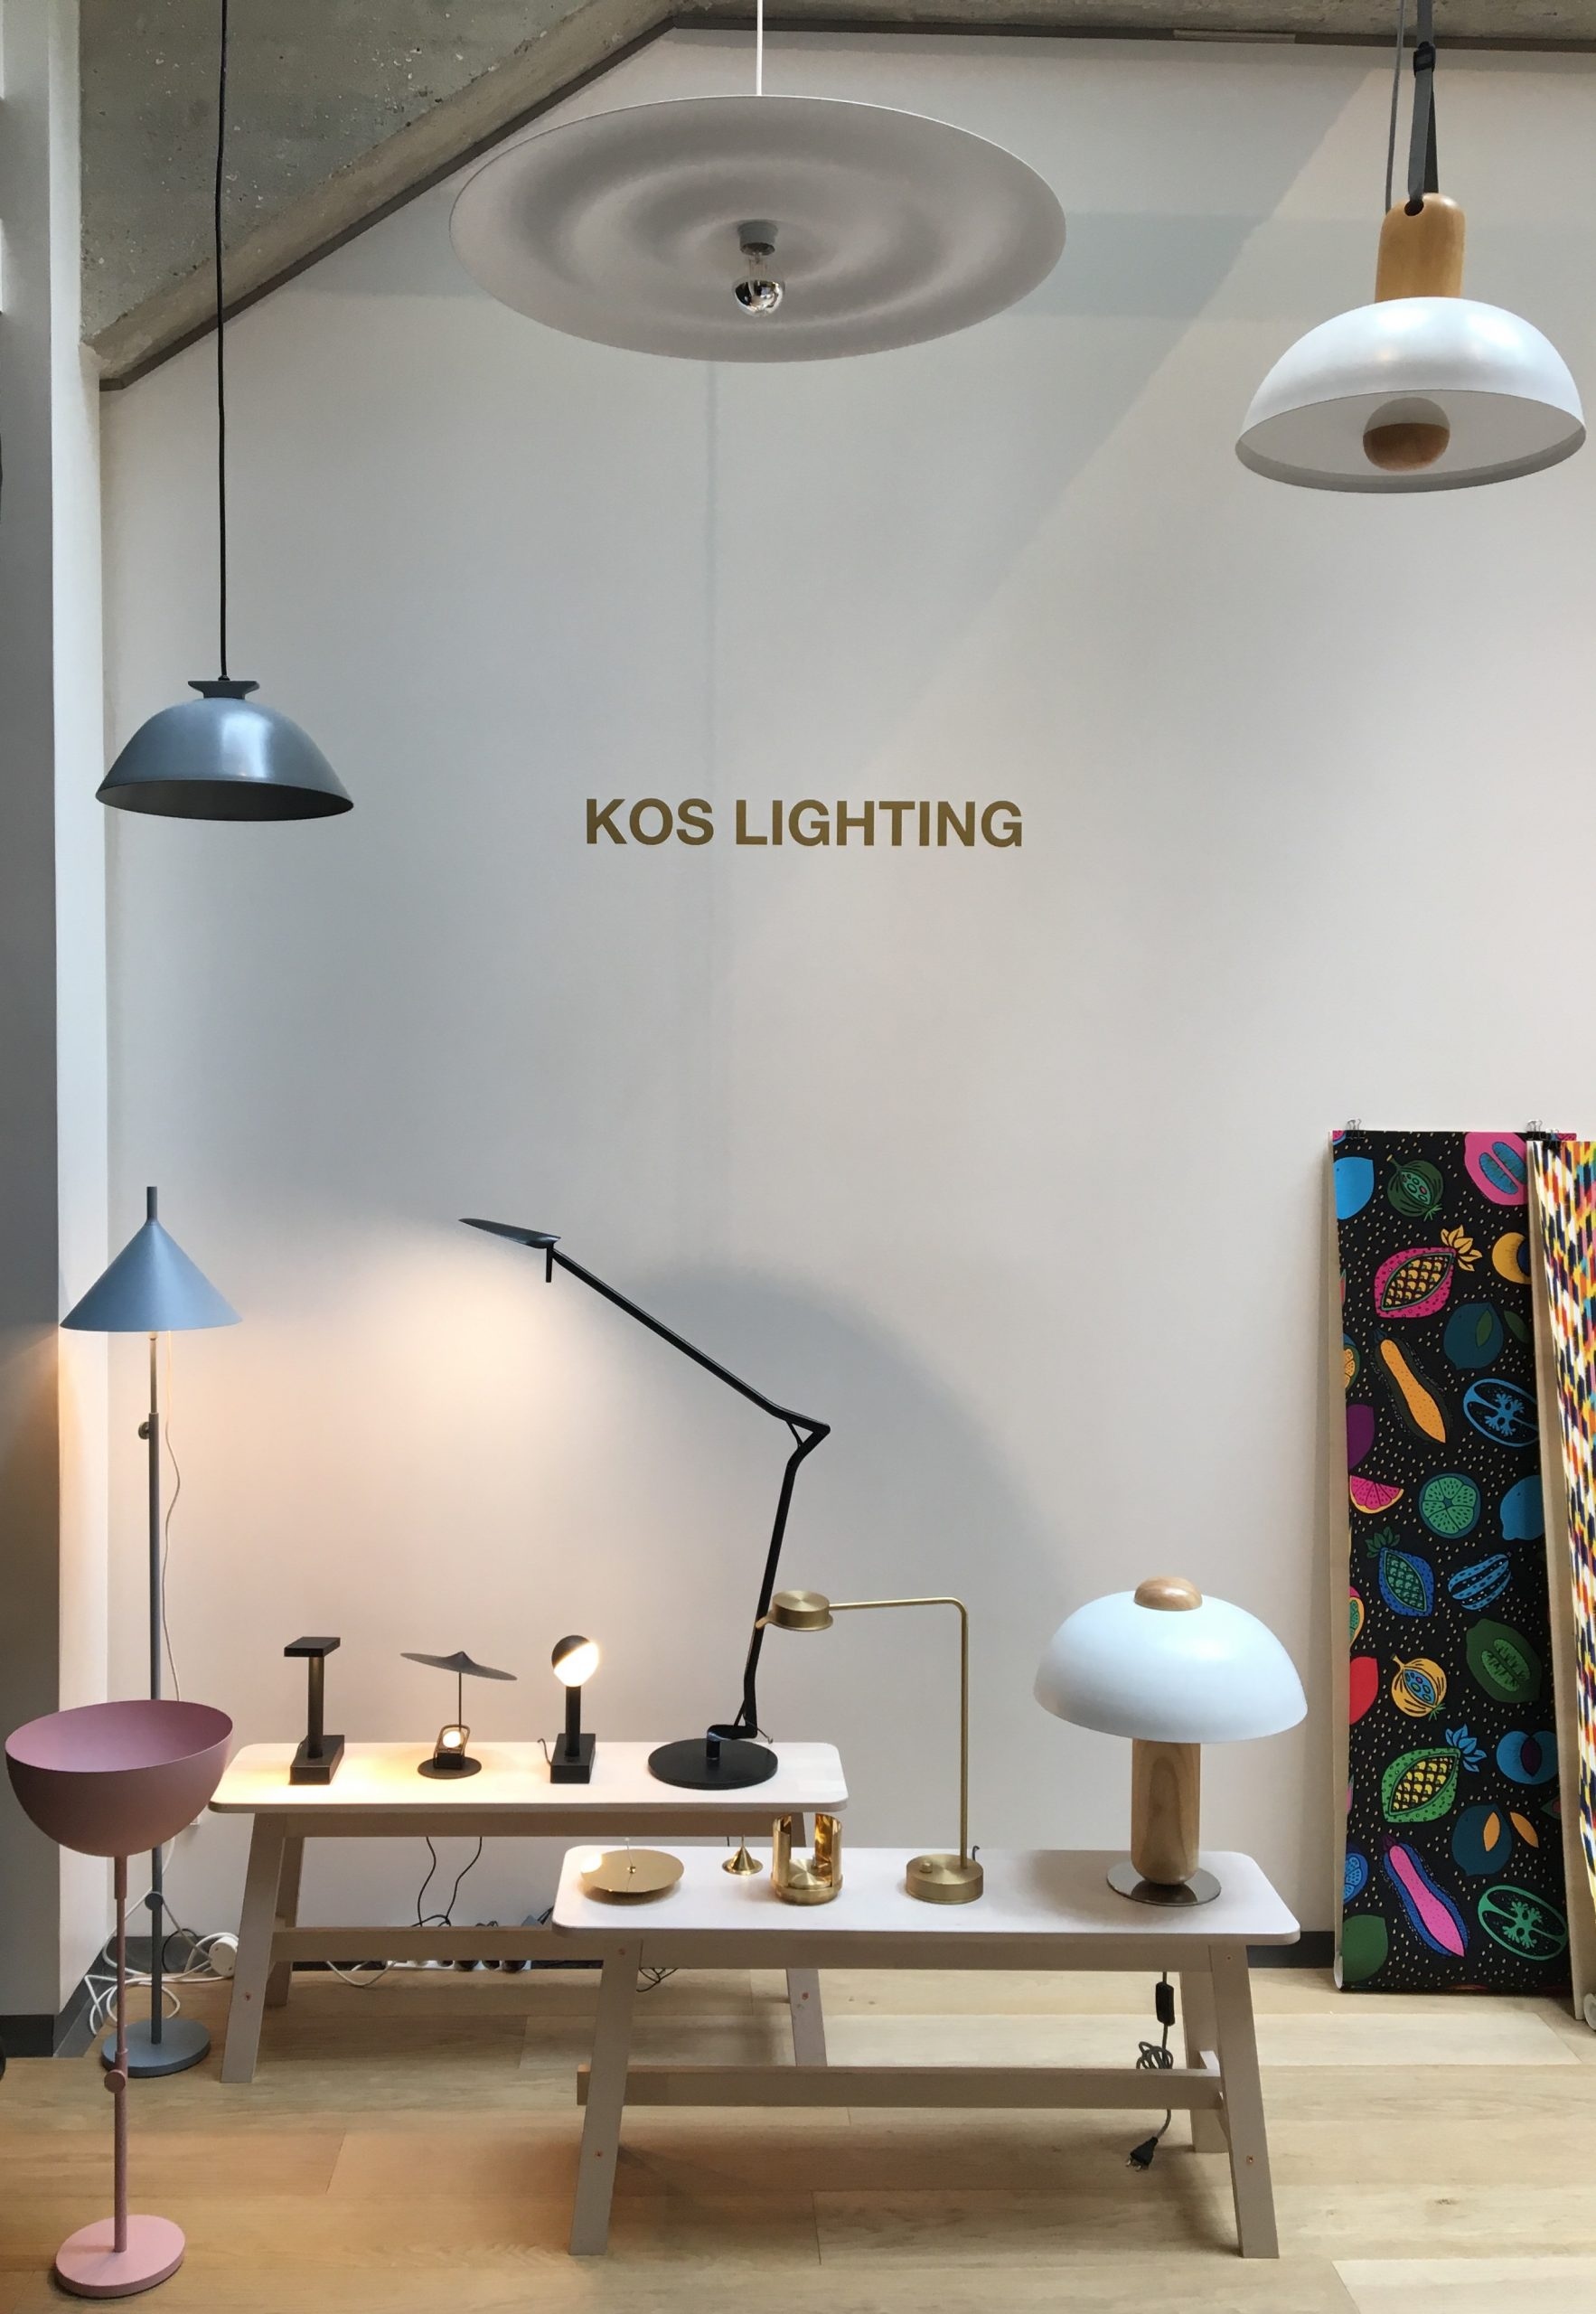 Bild: Kos Lighting